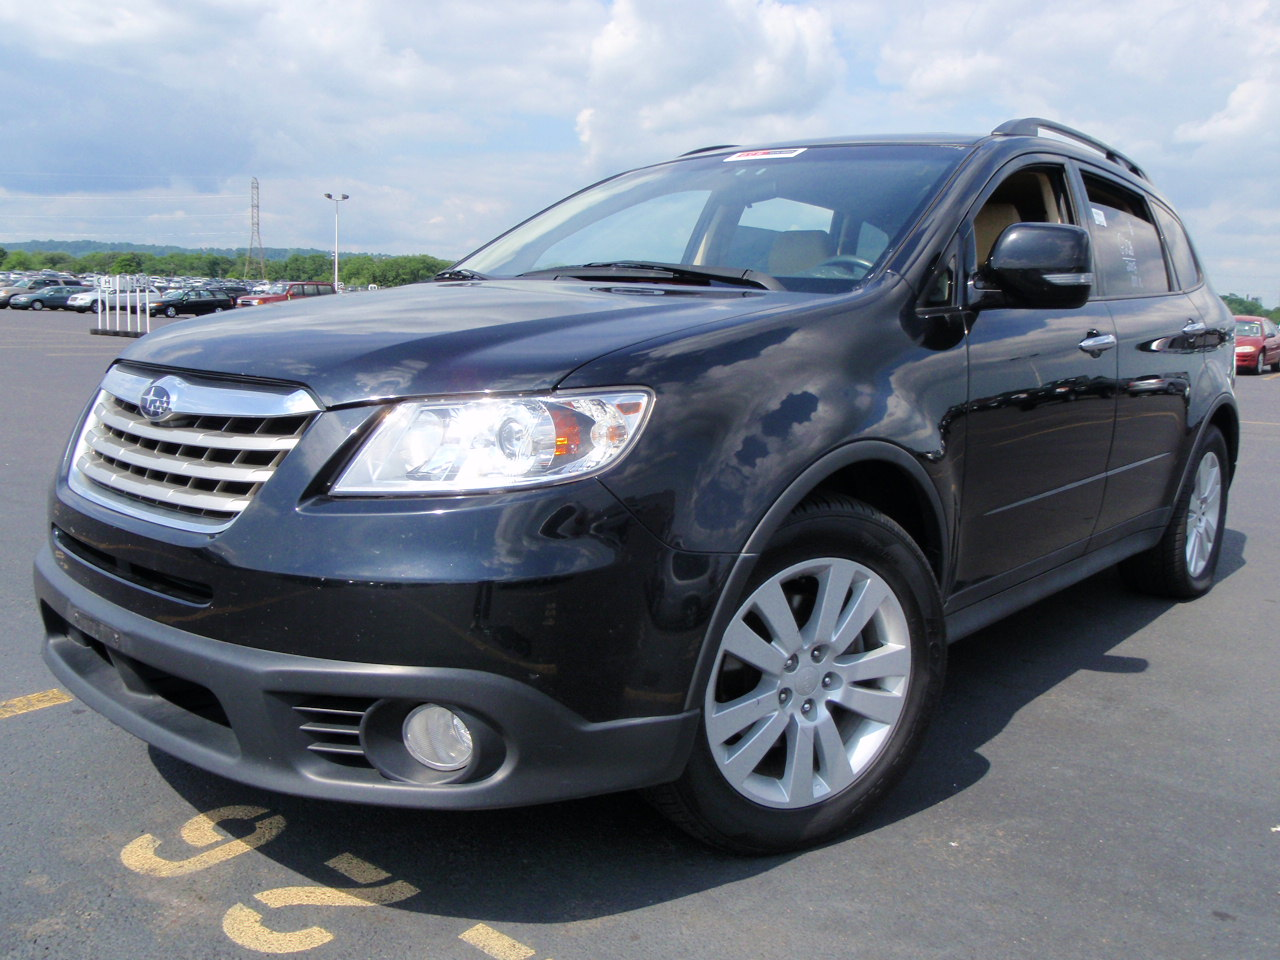 new and used subaru tribeca prices photos reviews html autos weblog. Black Bedroom Furniture Sets. Home Design Ideas